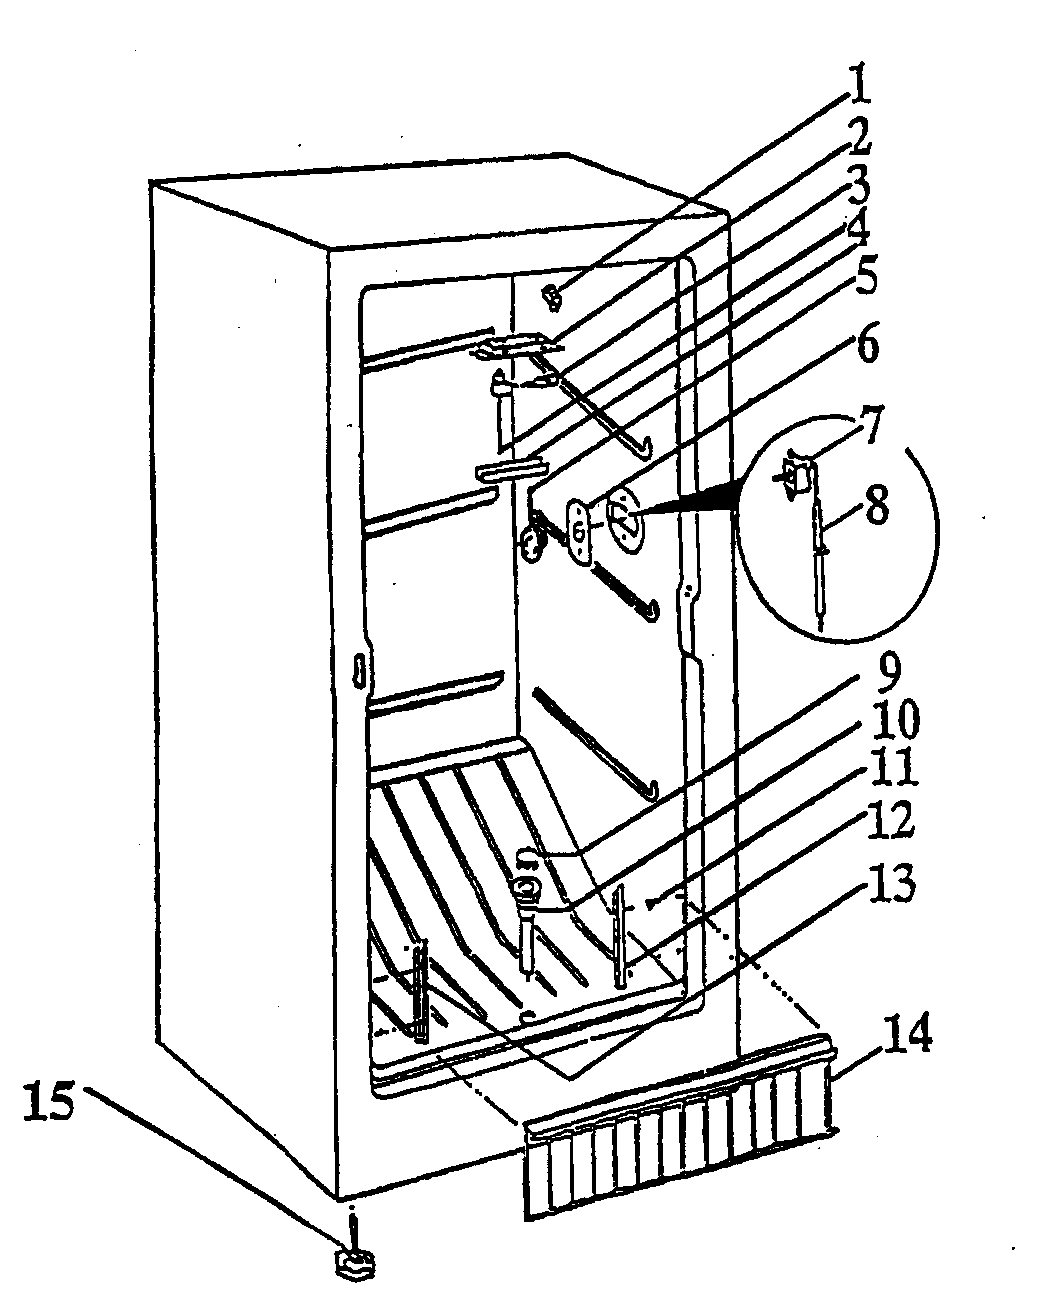 hight resolution of wc wood v07naa freezer compartment diagram